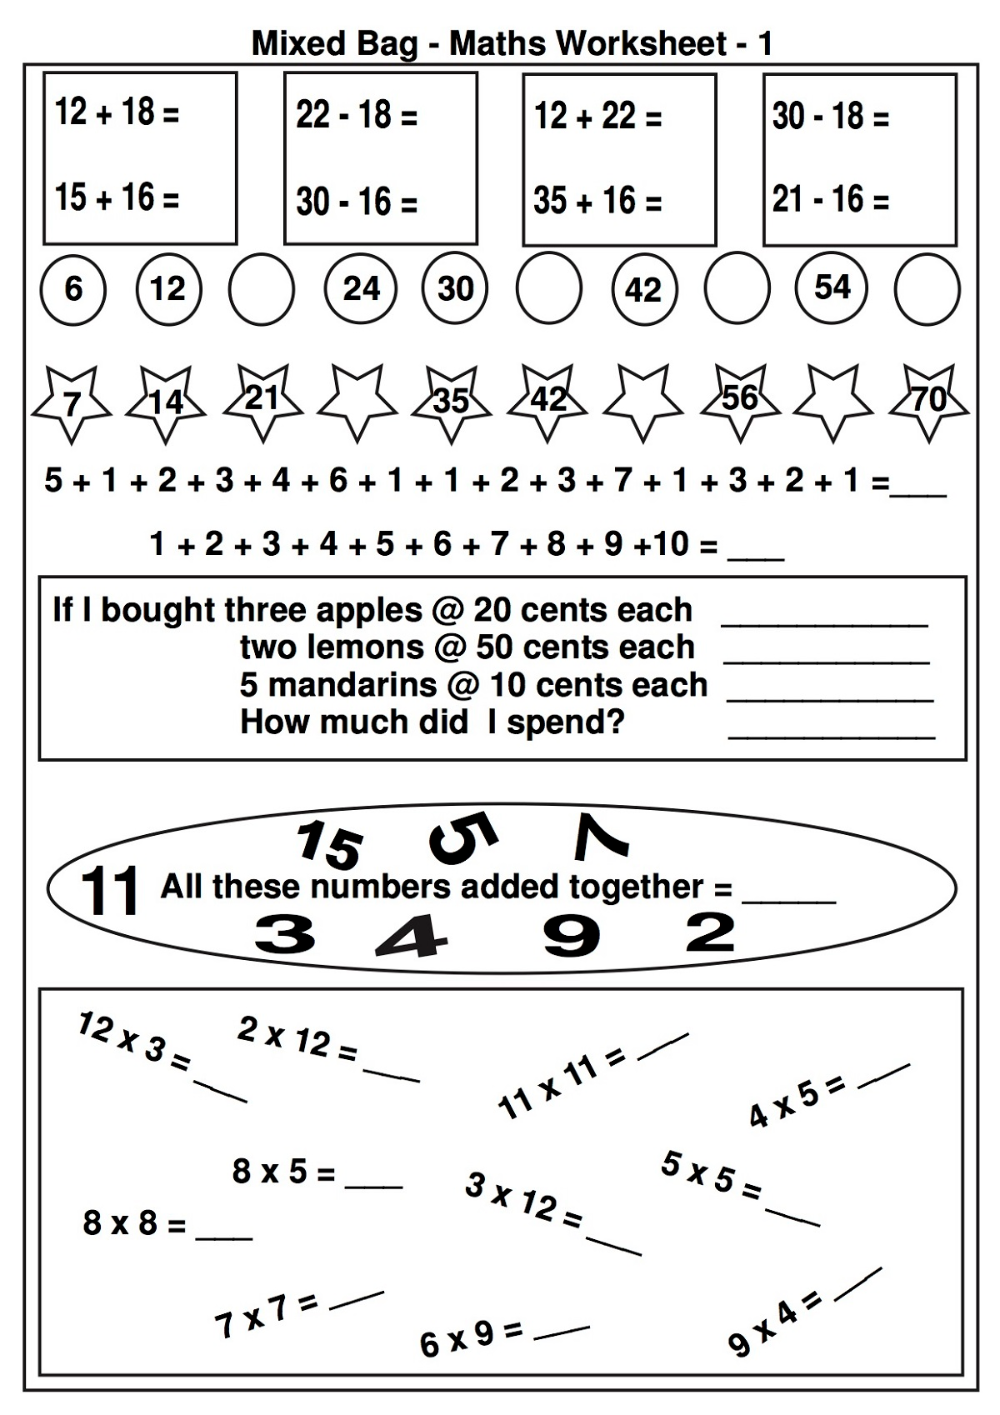 Printable Elementary Math Worksheets Free 2nd Grade Math Worksheets 2nd Grade Math Math Worksheets